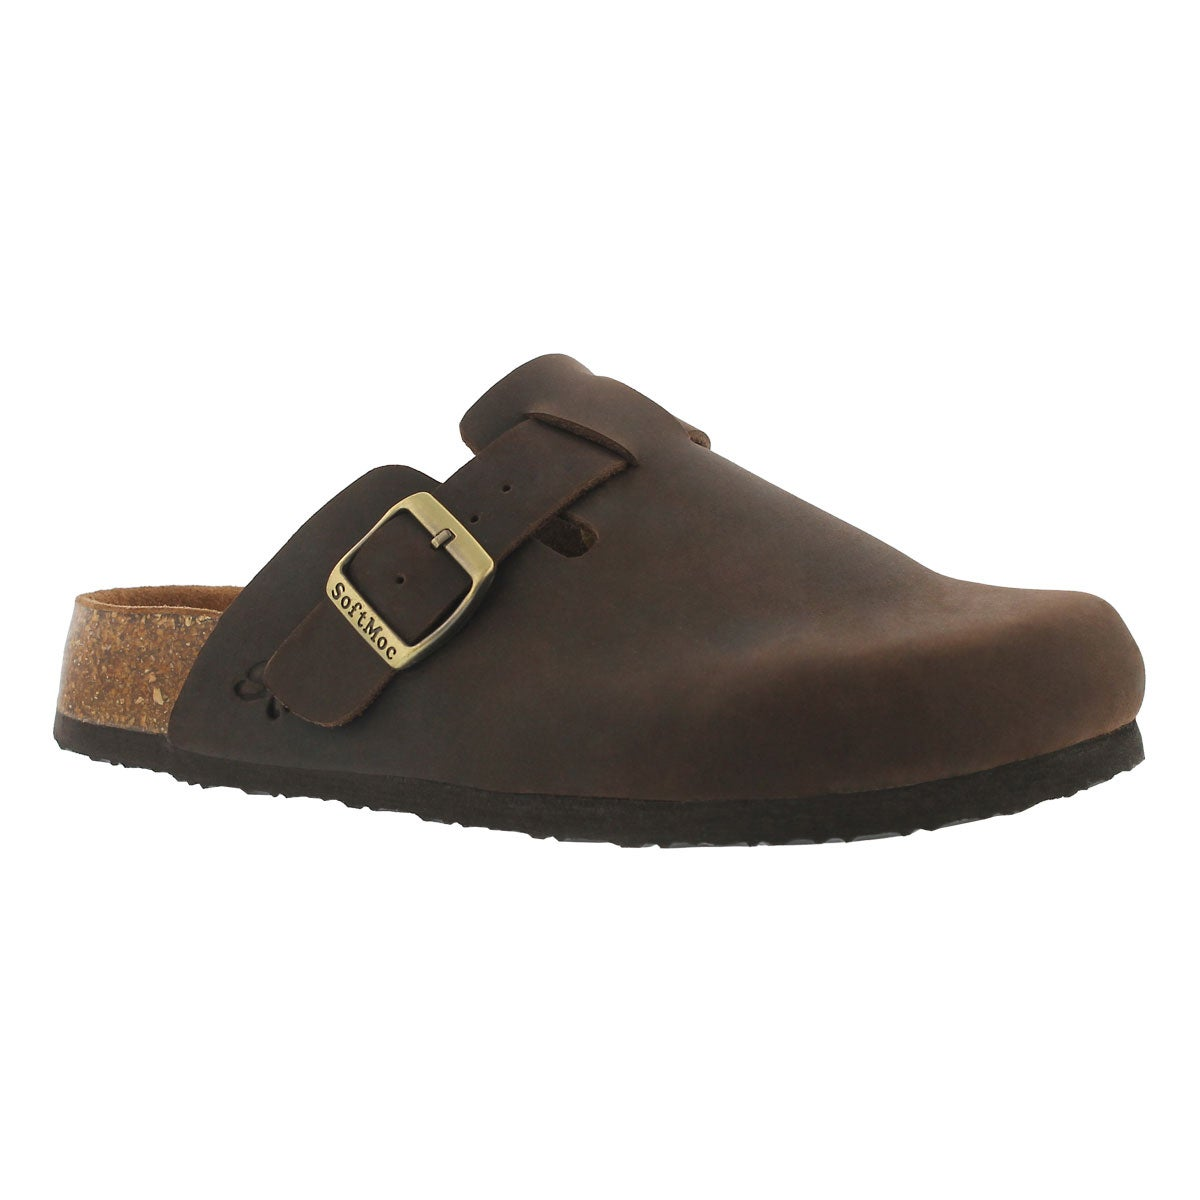 Women's AYR 5 brown memory foam casual clogs